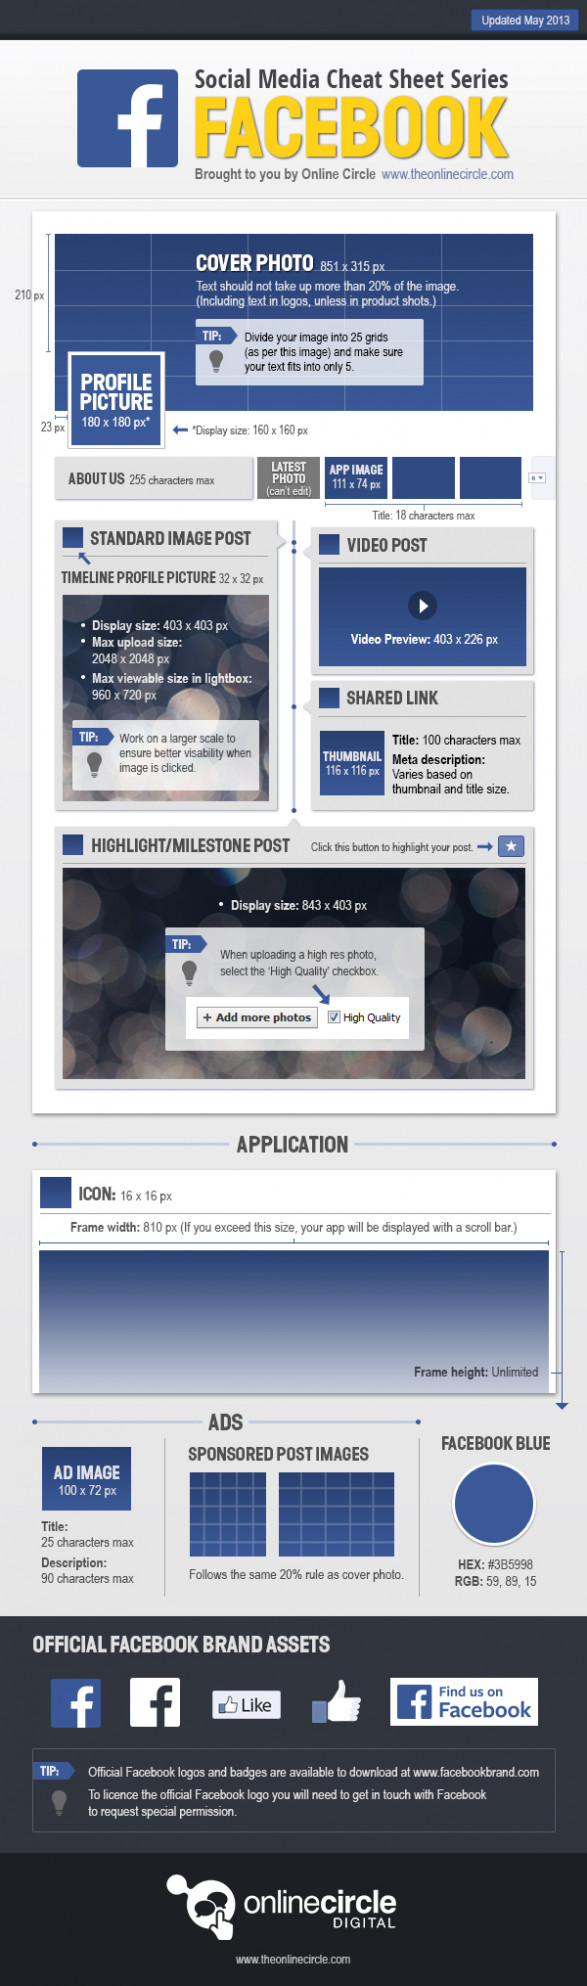 Online Circle Digital | Facebook Sizes and Dimensions Cheat Sheet 2013